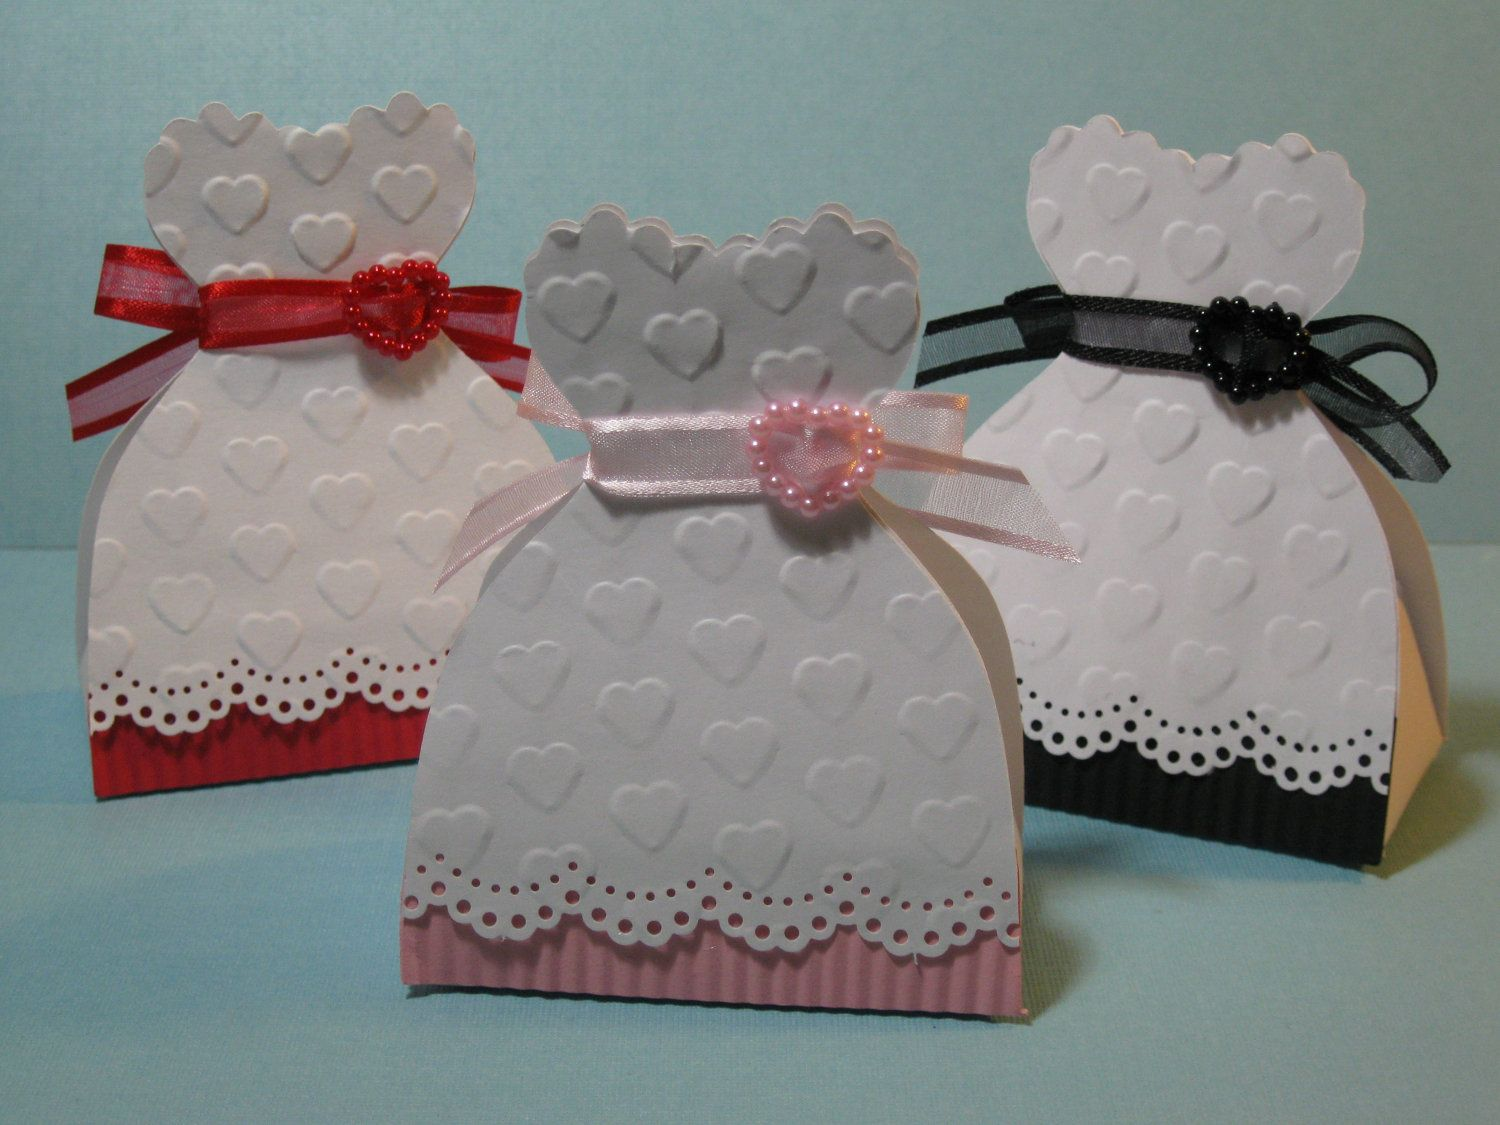 Diy Dress Shaped Boxes For Weddings And Quincea Era Free  ~ Entregar Un Regalo De Forma Original